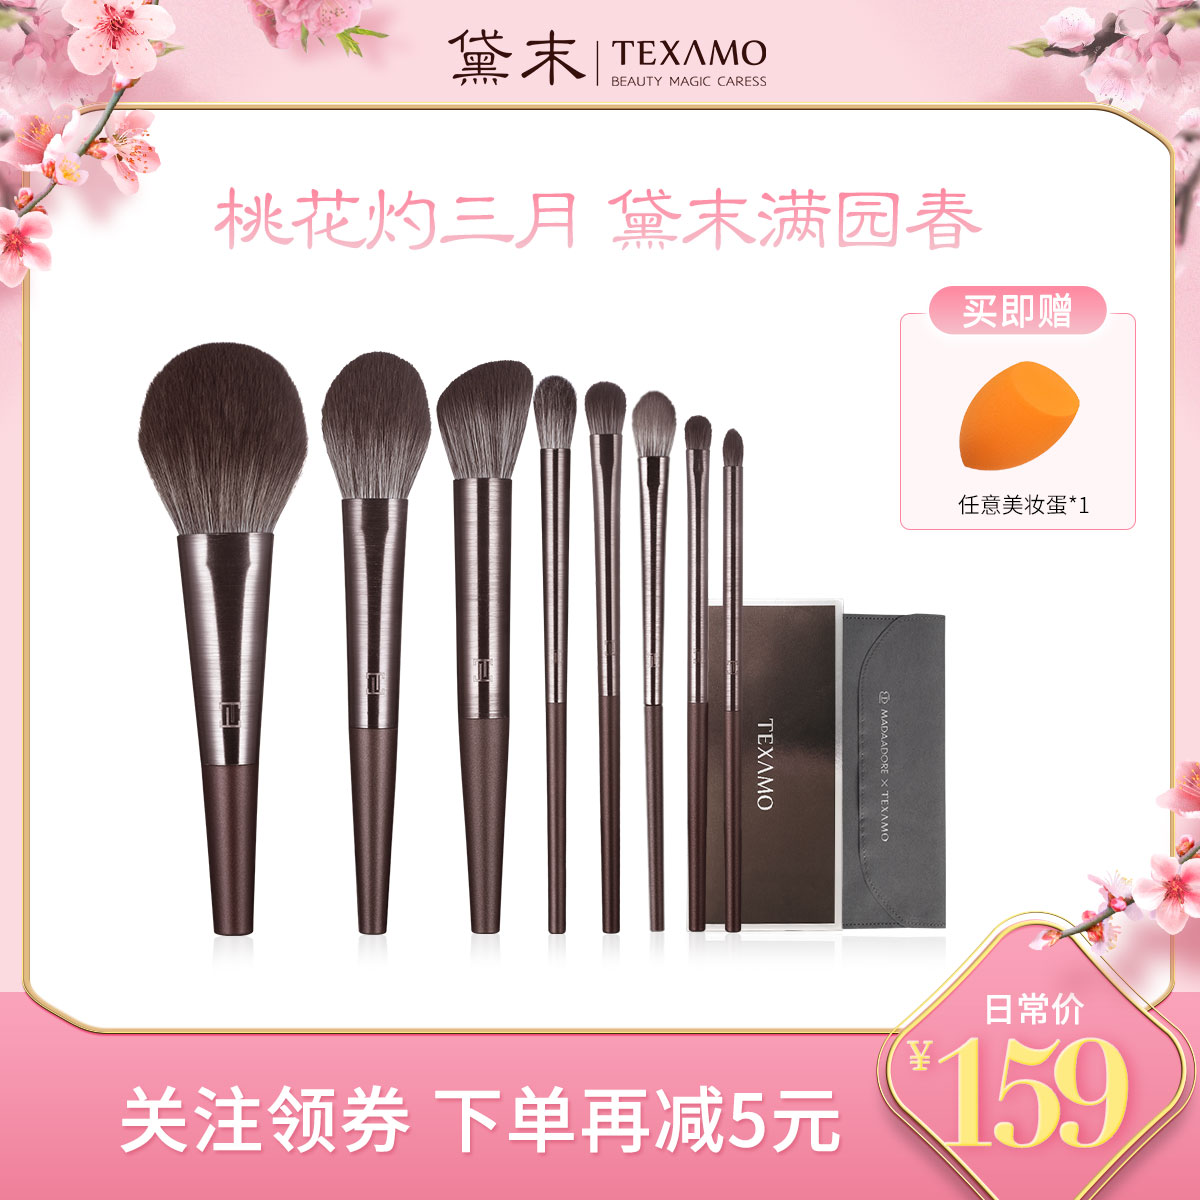 Texamo/ Dai Mei, Mao egg joint makeup brush brush shadow series 8 Eye Shadow red blush brush new